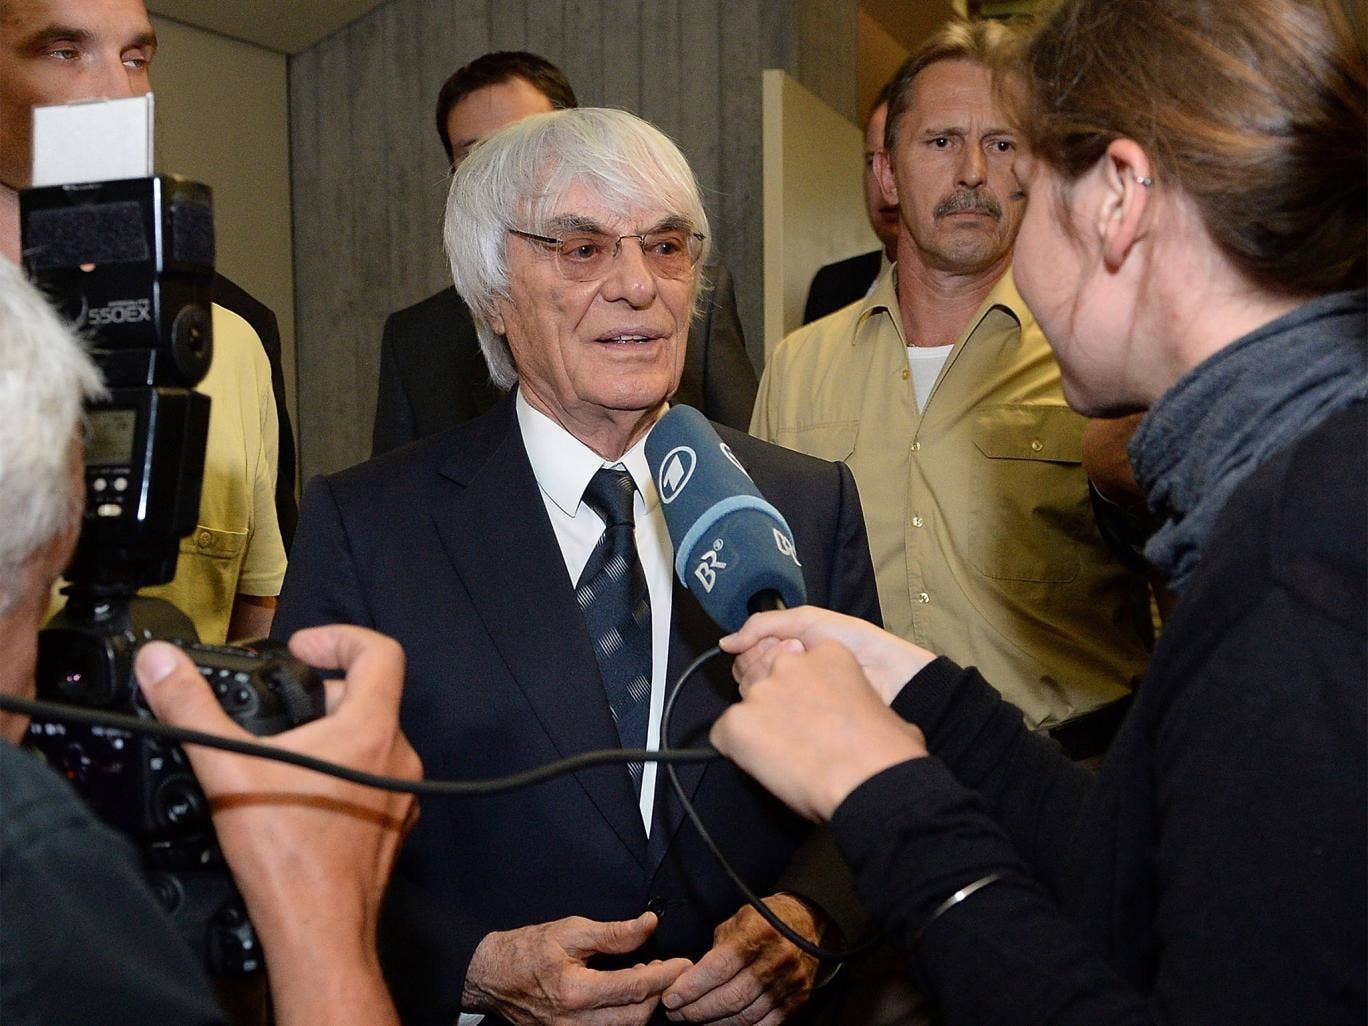 Bernie Ecclestone says he only paid $100m to settle the case because he can afford to pay that sum